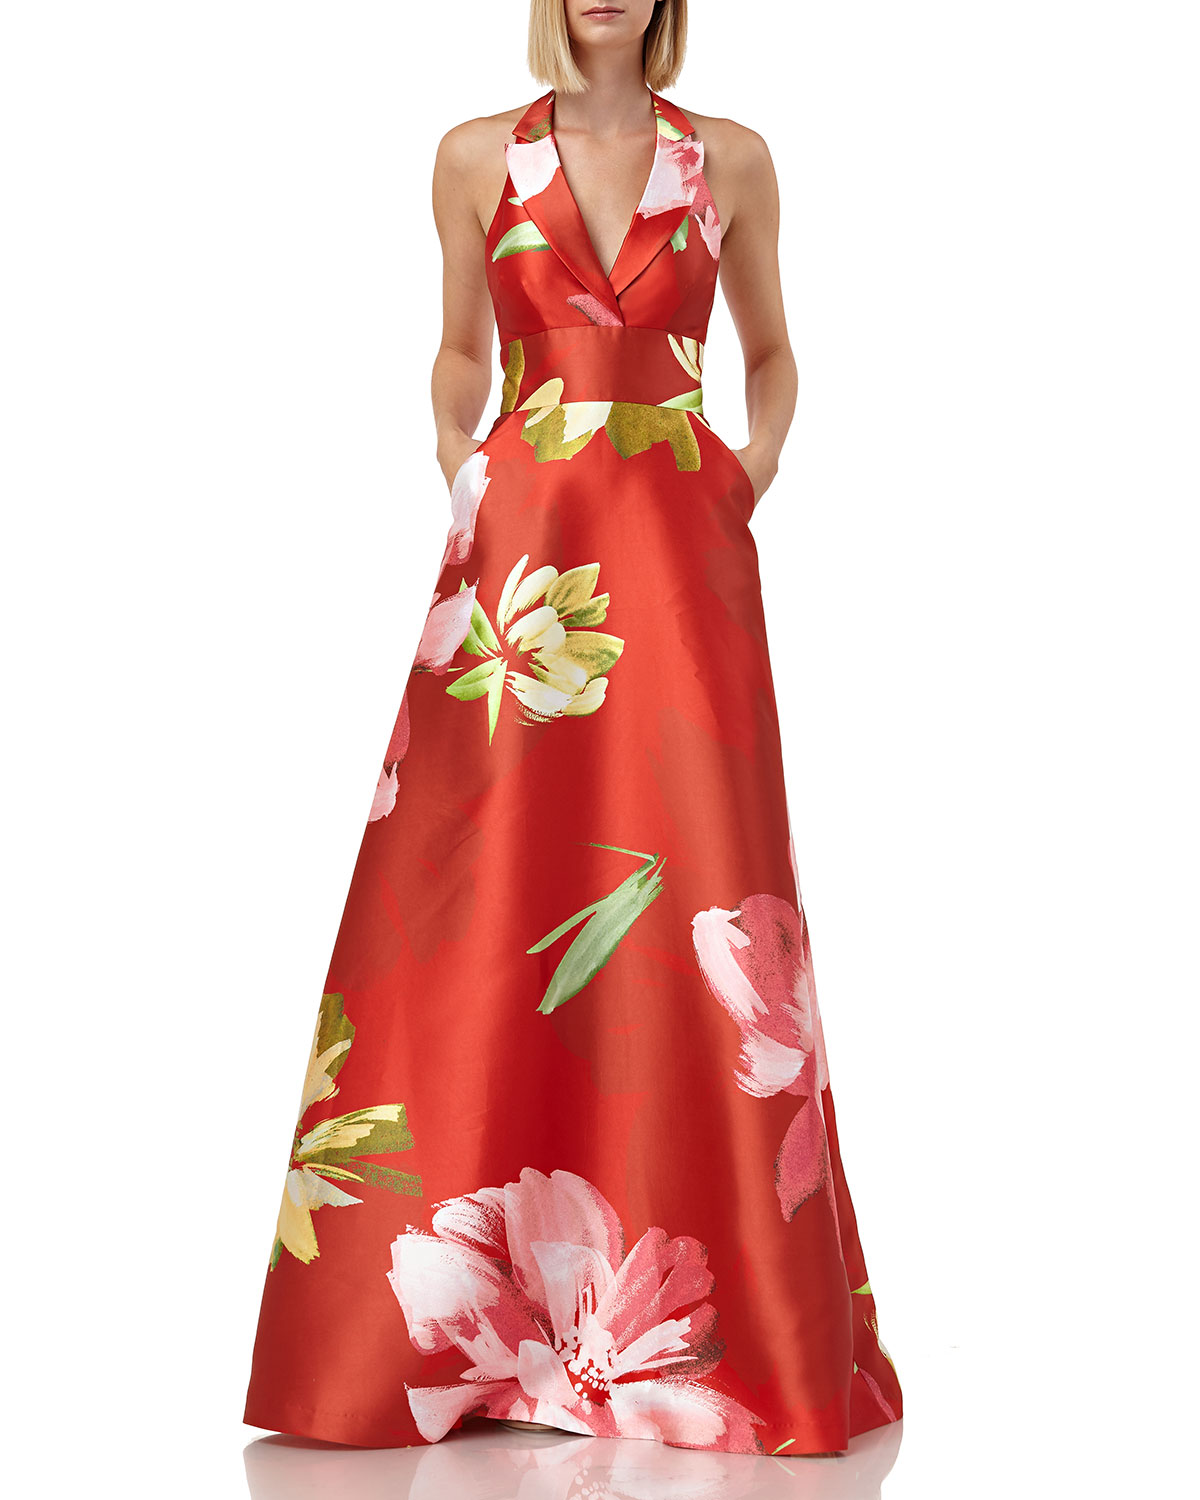 Wedding Gown Stores Nyc: Kay Unger New York Floral-Printed Mikado Halter Gown With